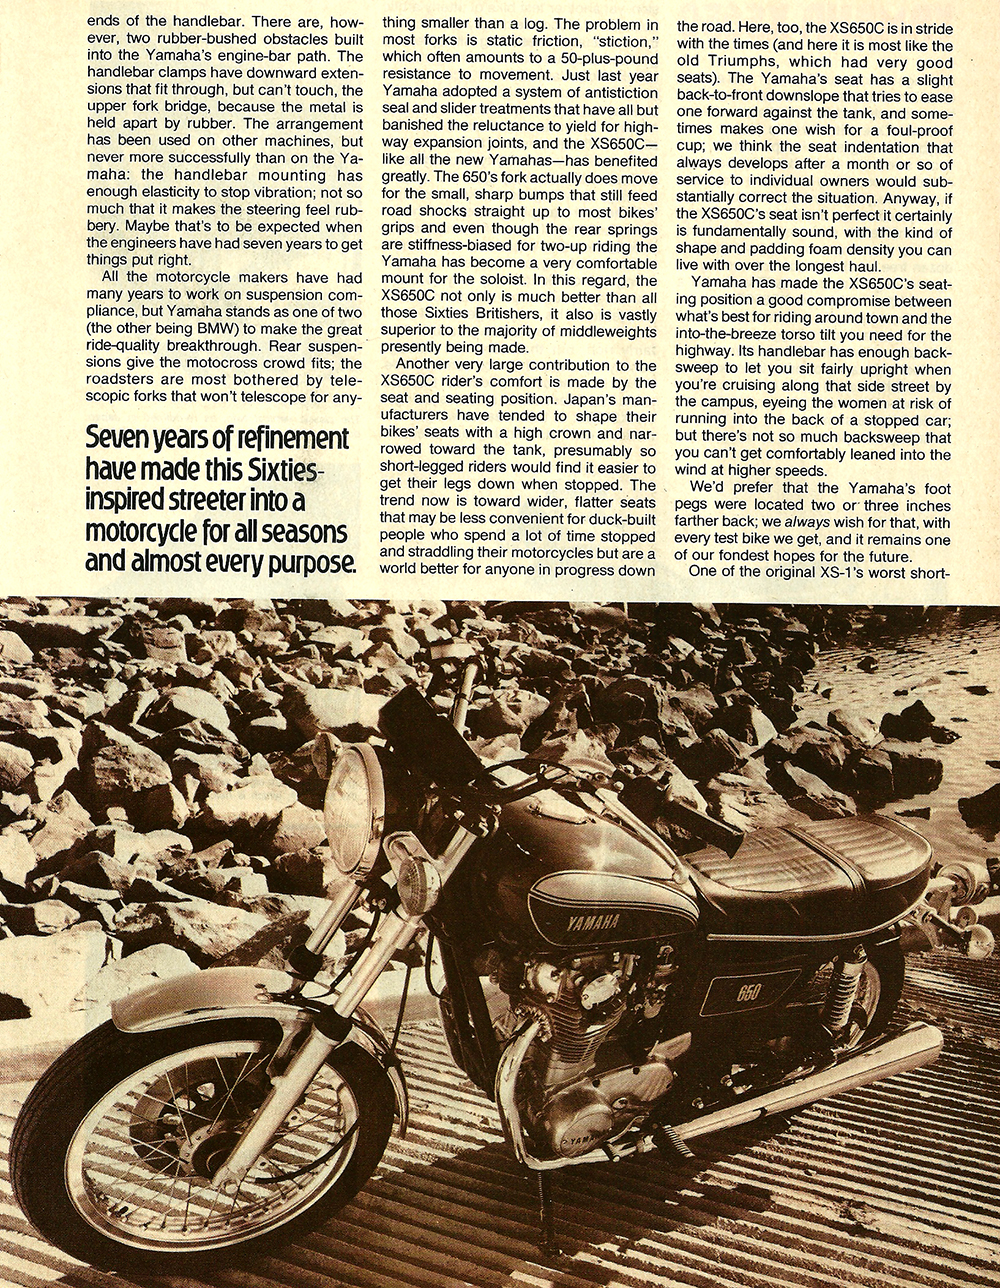 1977 Yamaha XS650D road test 2.jpg